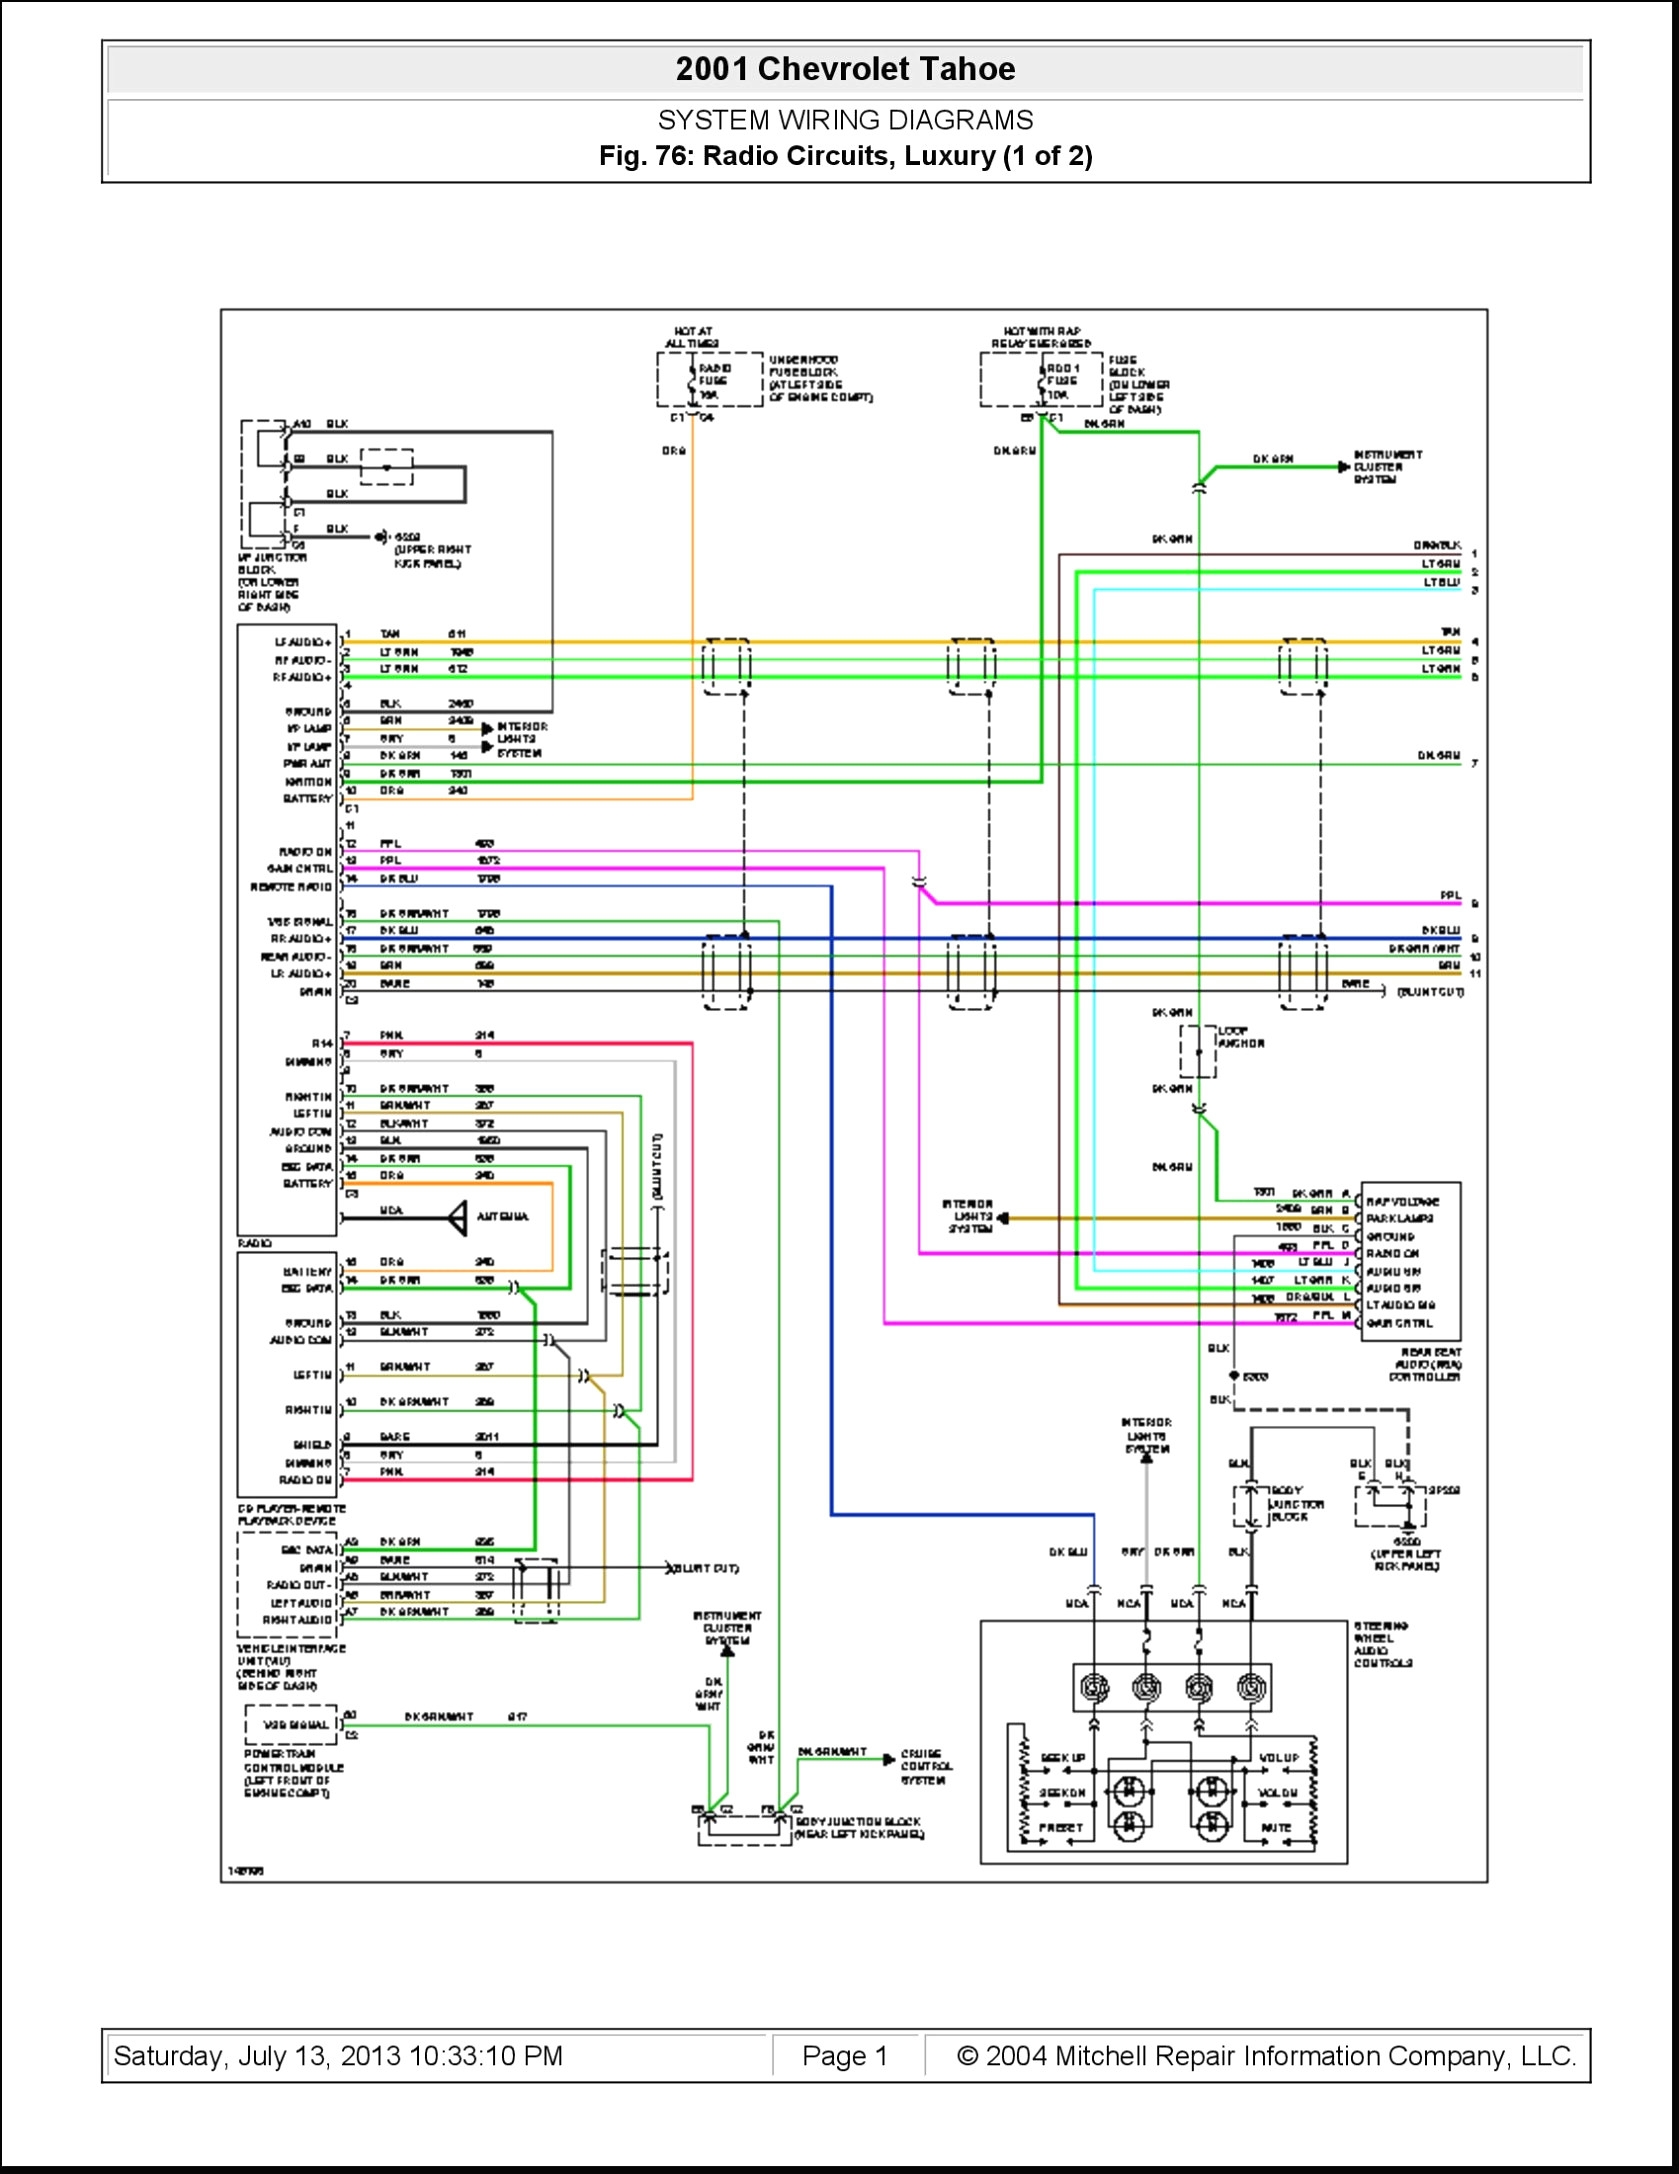 2006 chevy malibu wiring schematic | free wiring diagram 2002 radio wiring diagram schematic